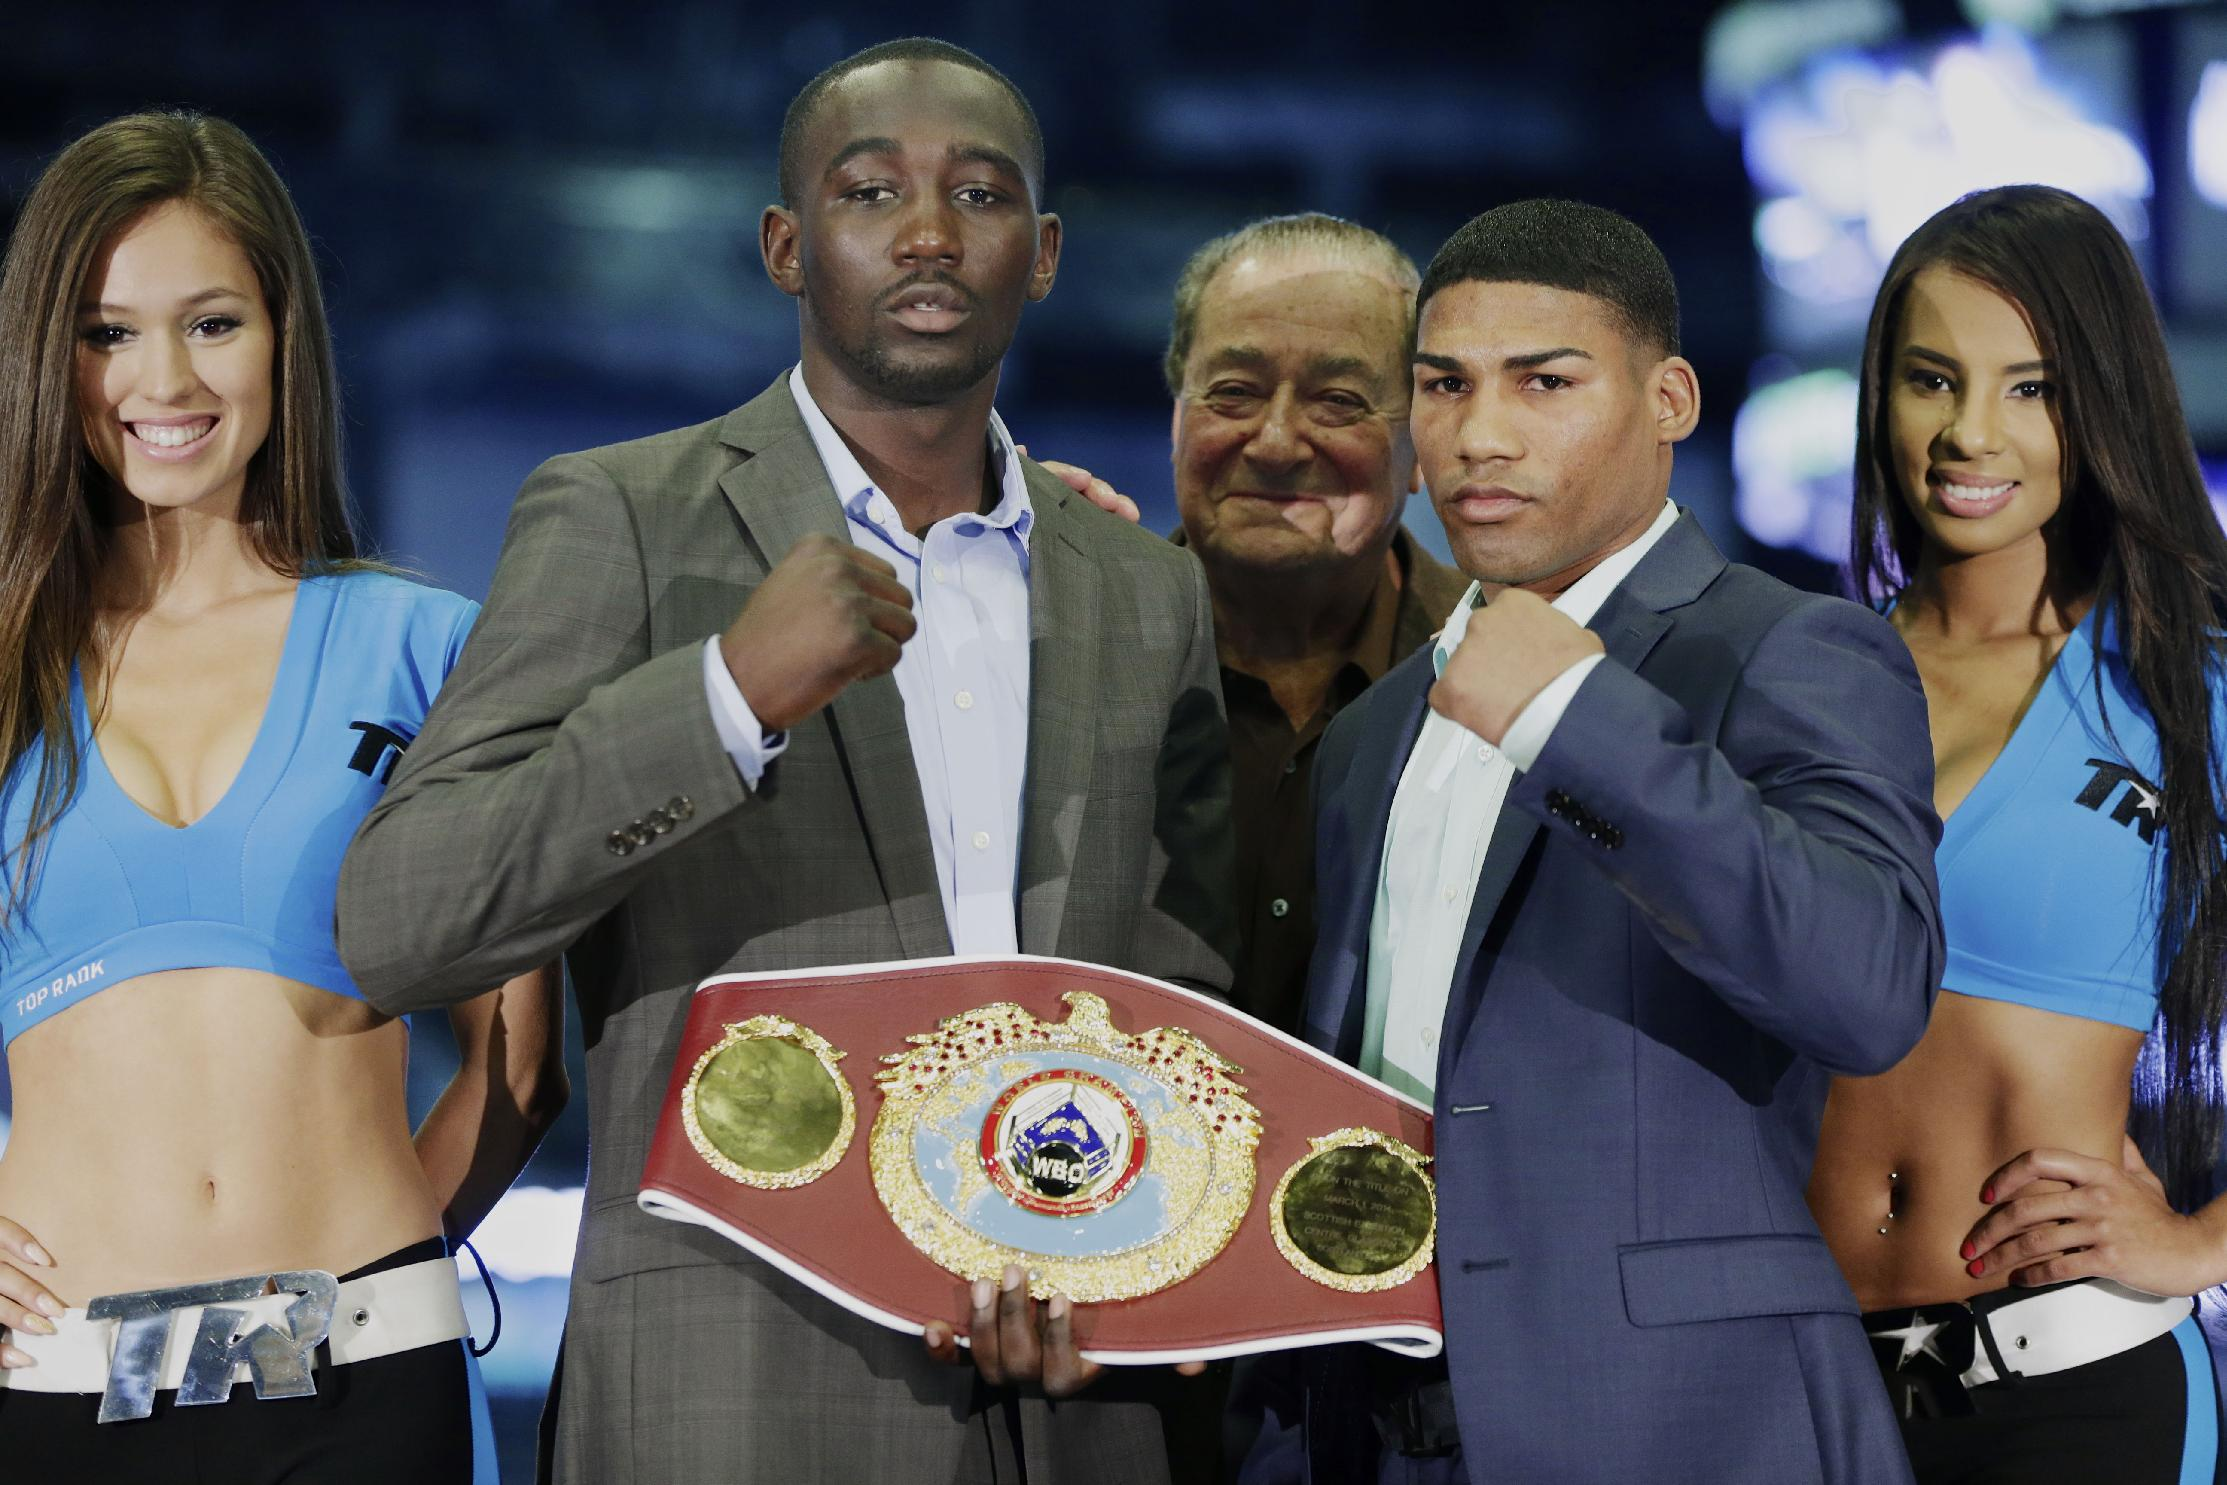 Boxers Terence Crawford, second from left, and Yuriorkis Gamboa, second from right, pose for a photo with promoter Bob Arum, center, during a news conference in Omaha, Neb., Thursday, May 8, 2014, to announce their world lightweight championship fight in June. Crawford will defend his WBO title in his hometown, in the first world championship fight in Omaha since Joe Frazier stopped Ron Stander in 1972